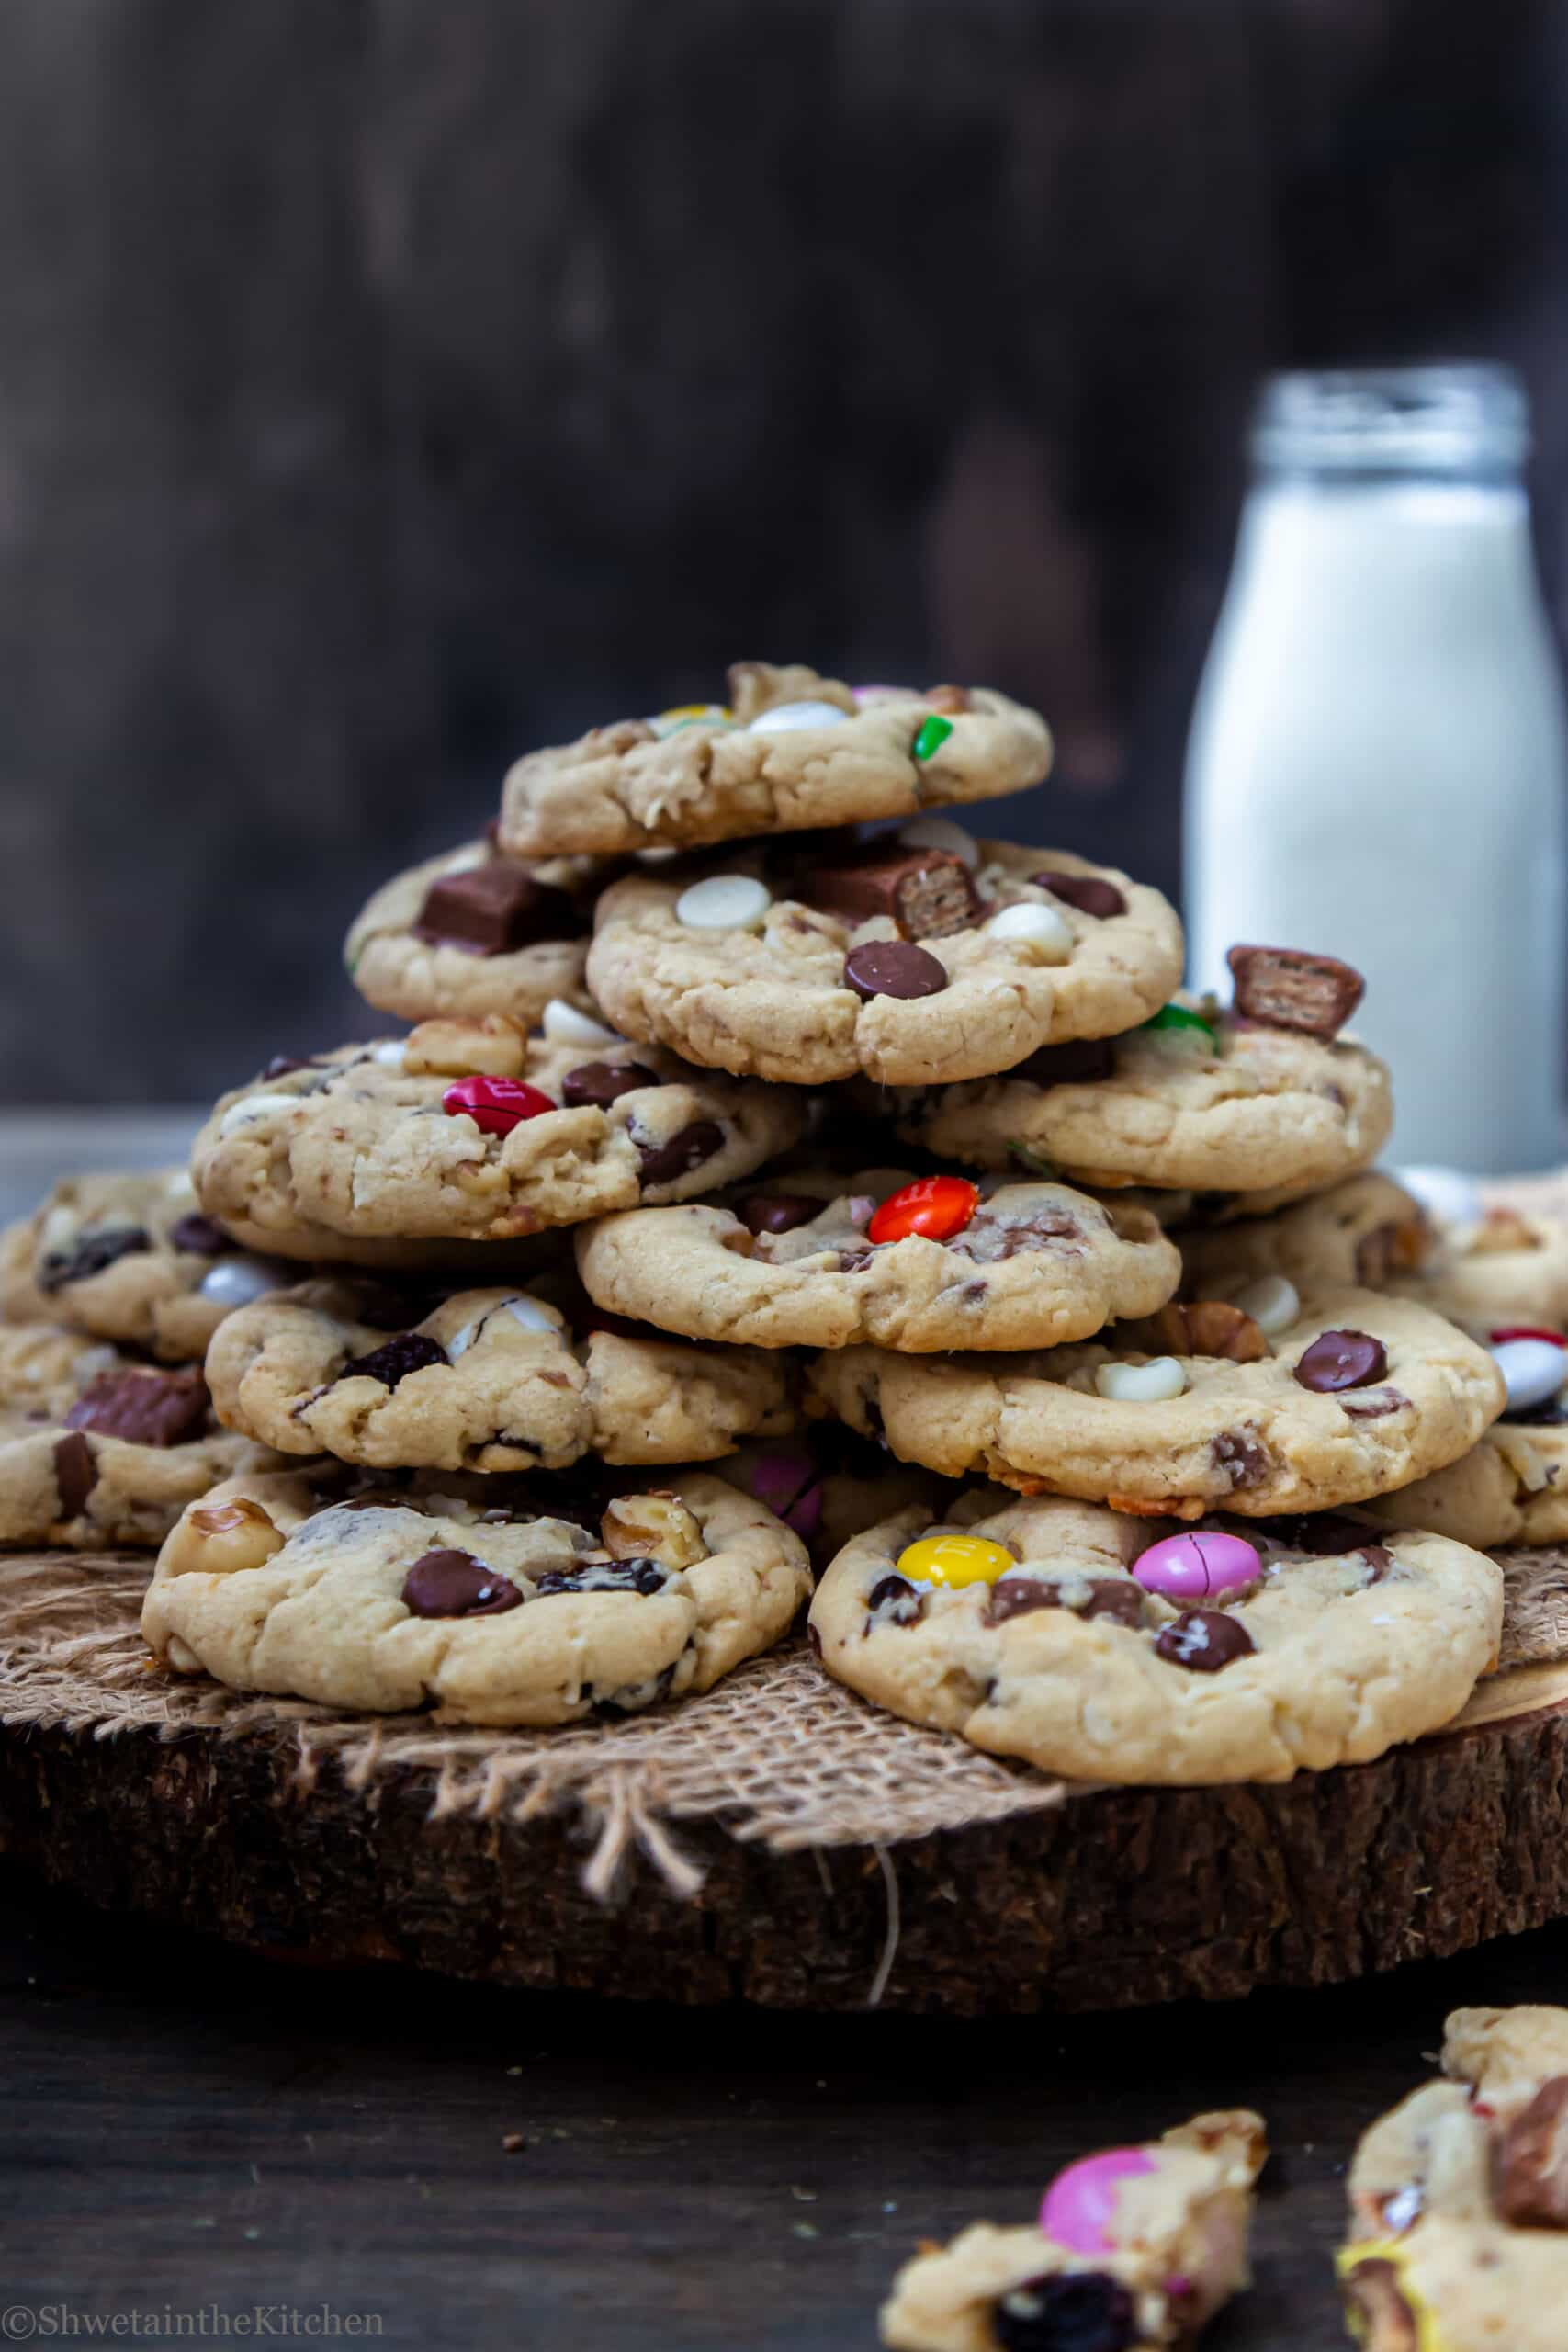 Heaped tower of Eggless Kitchen Sink Cookies on board with a bottle of milk in background